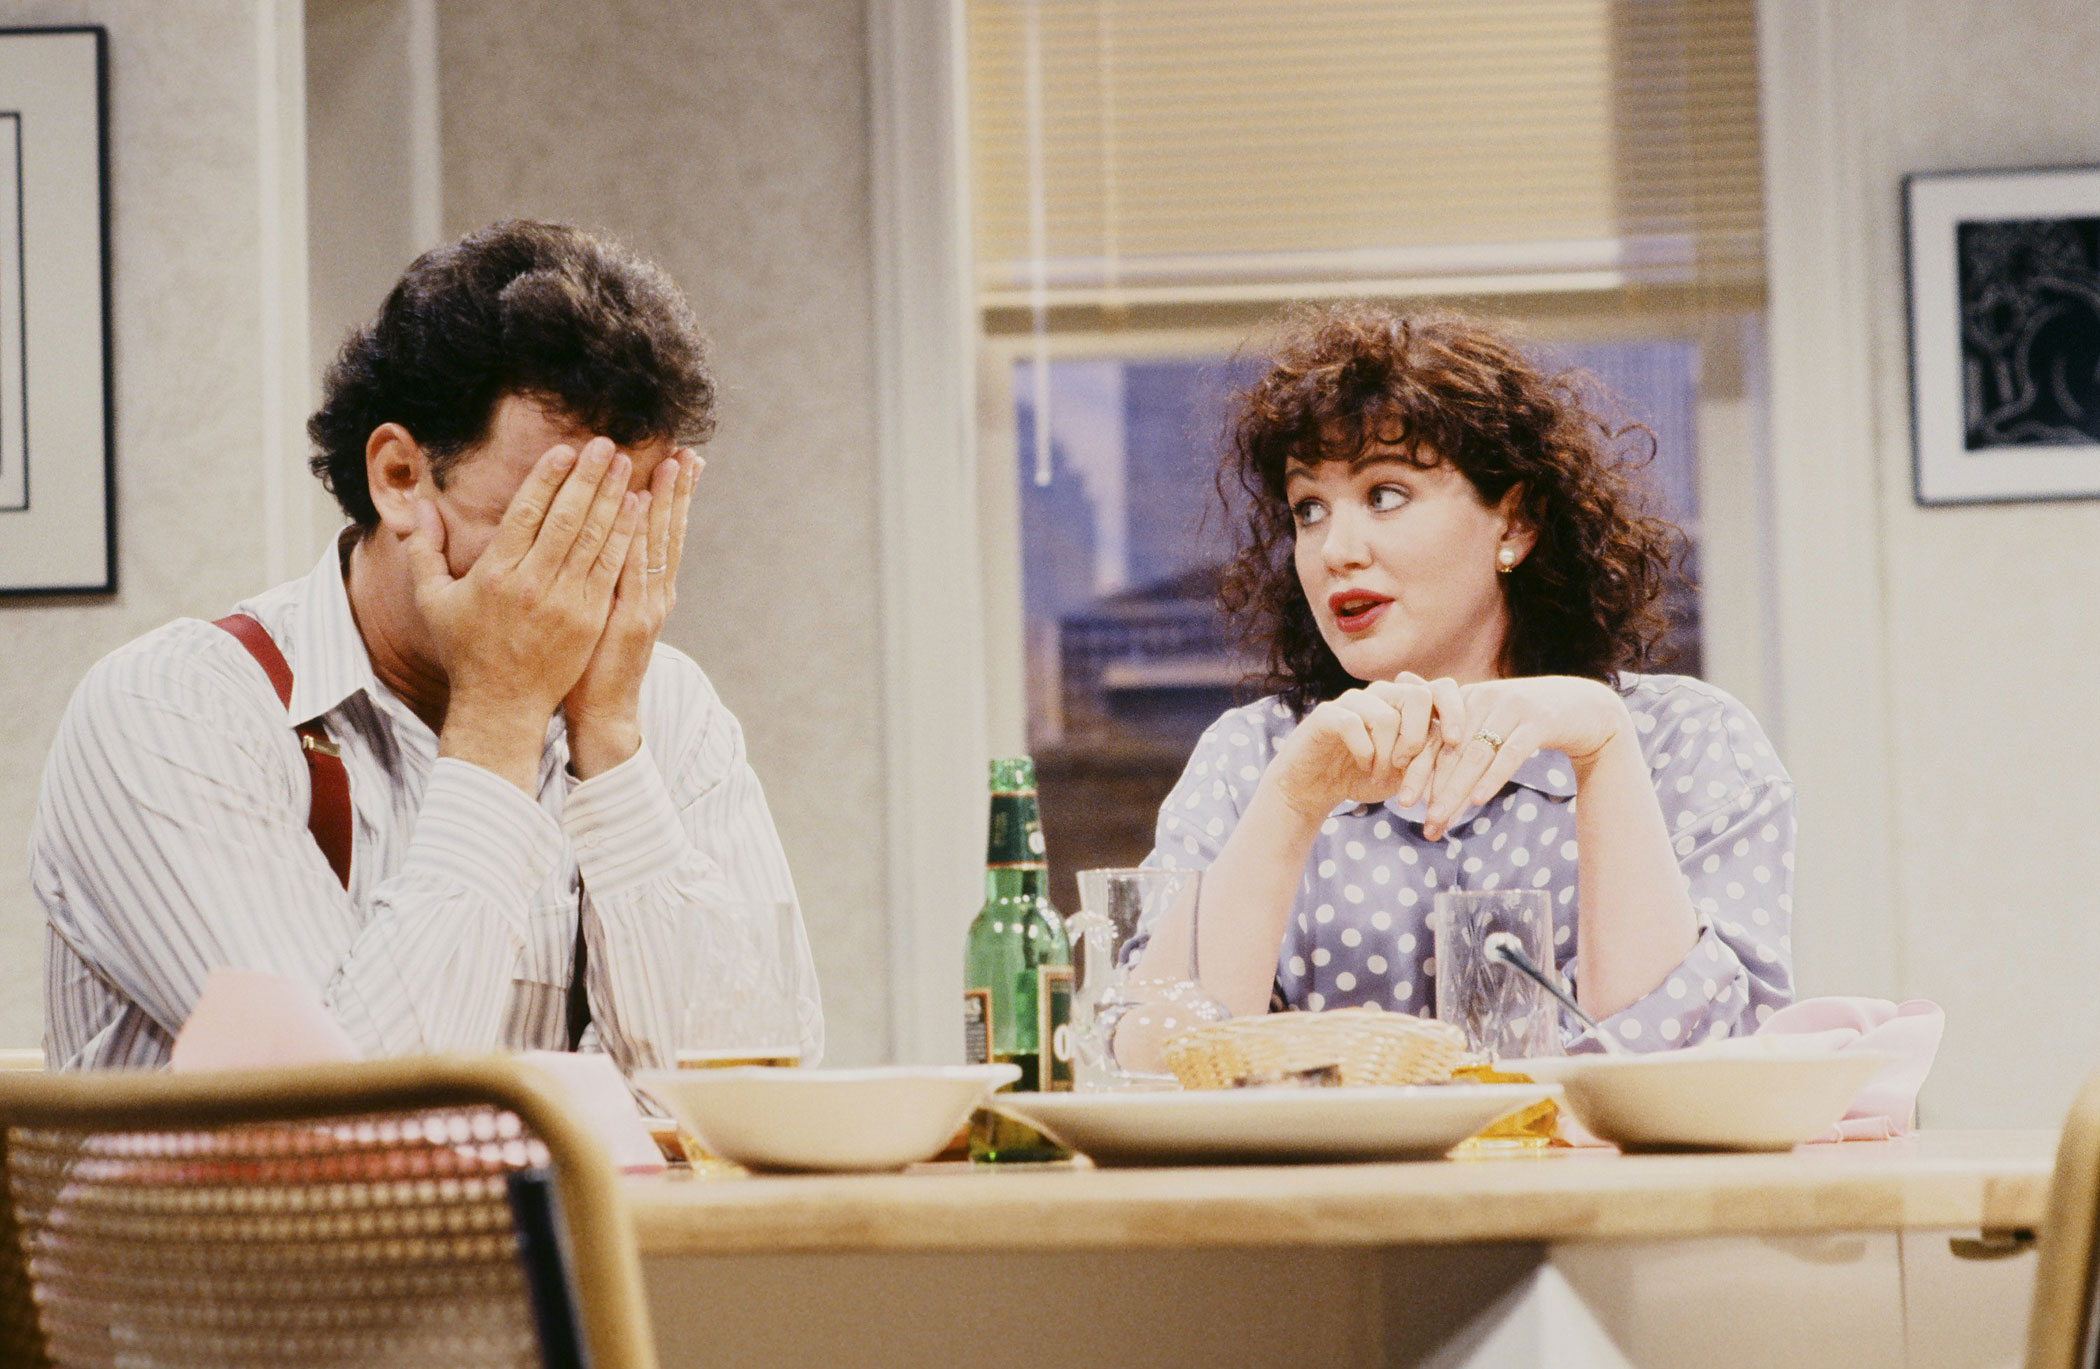 Tom Hanks as Rick and Julia Sweeney as Katie during the She Turned Into Her Mother skit on May 9, 2010.